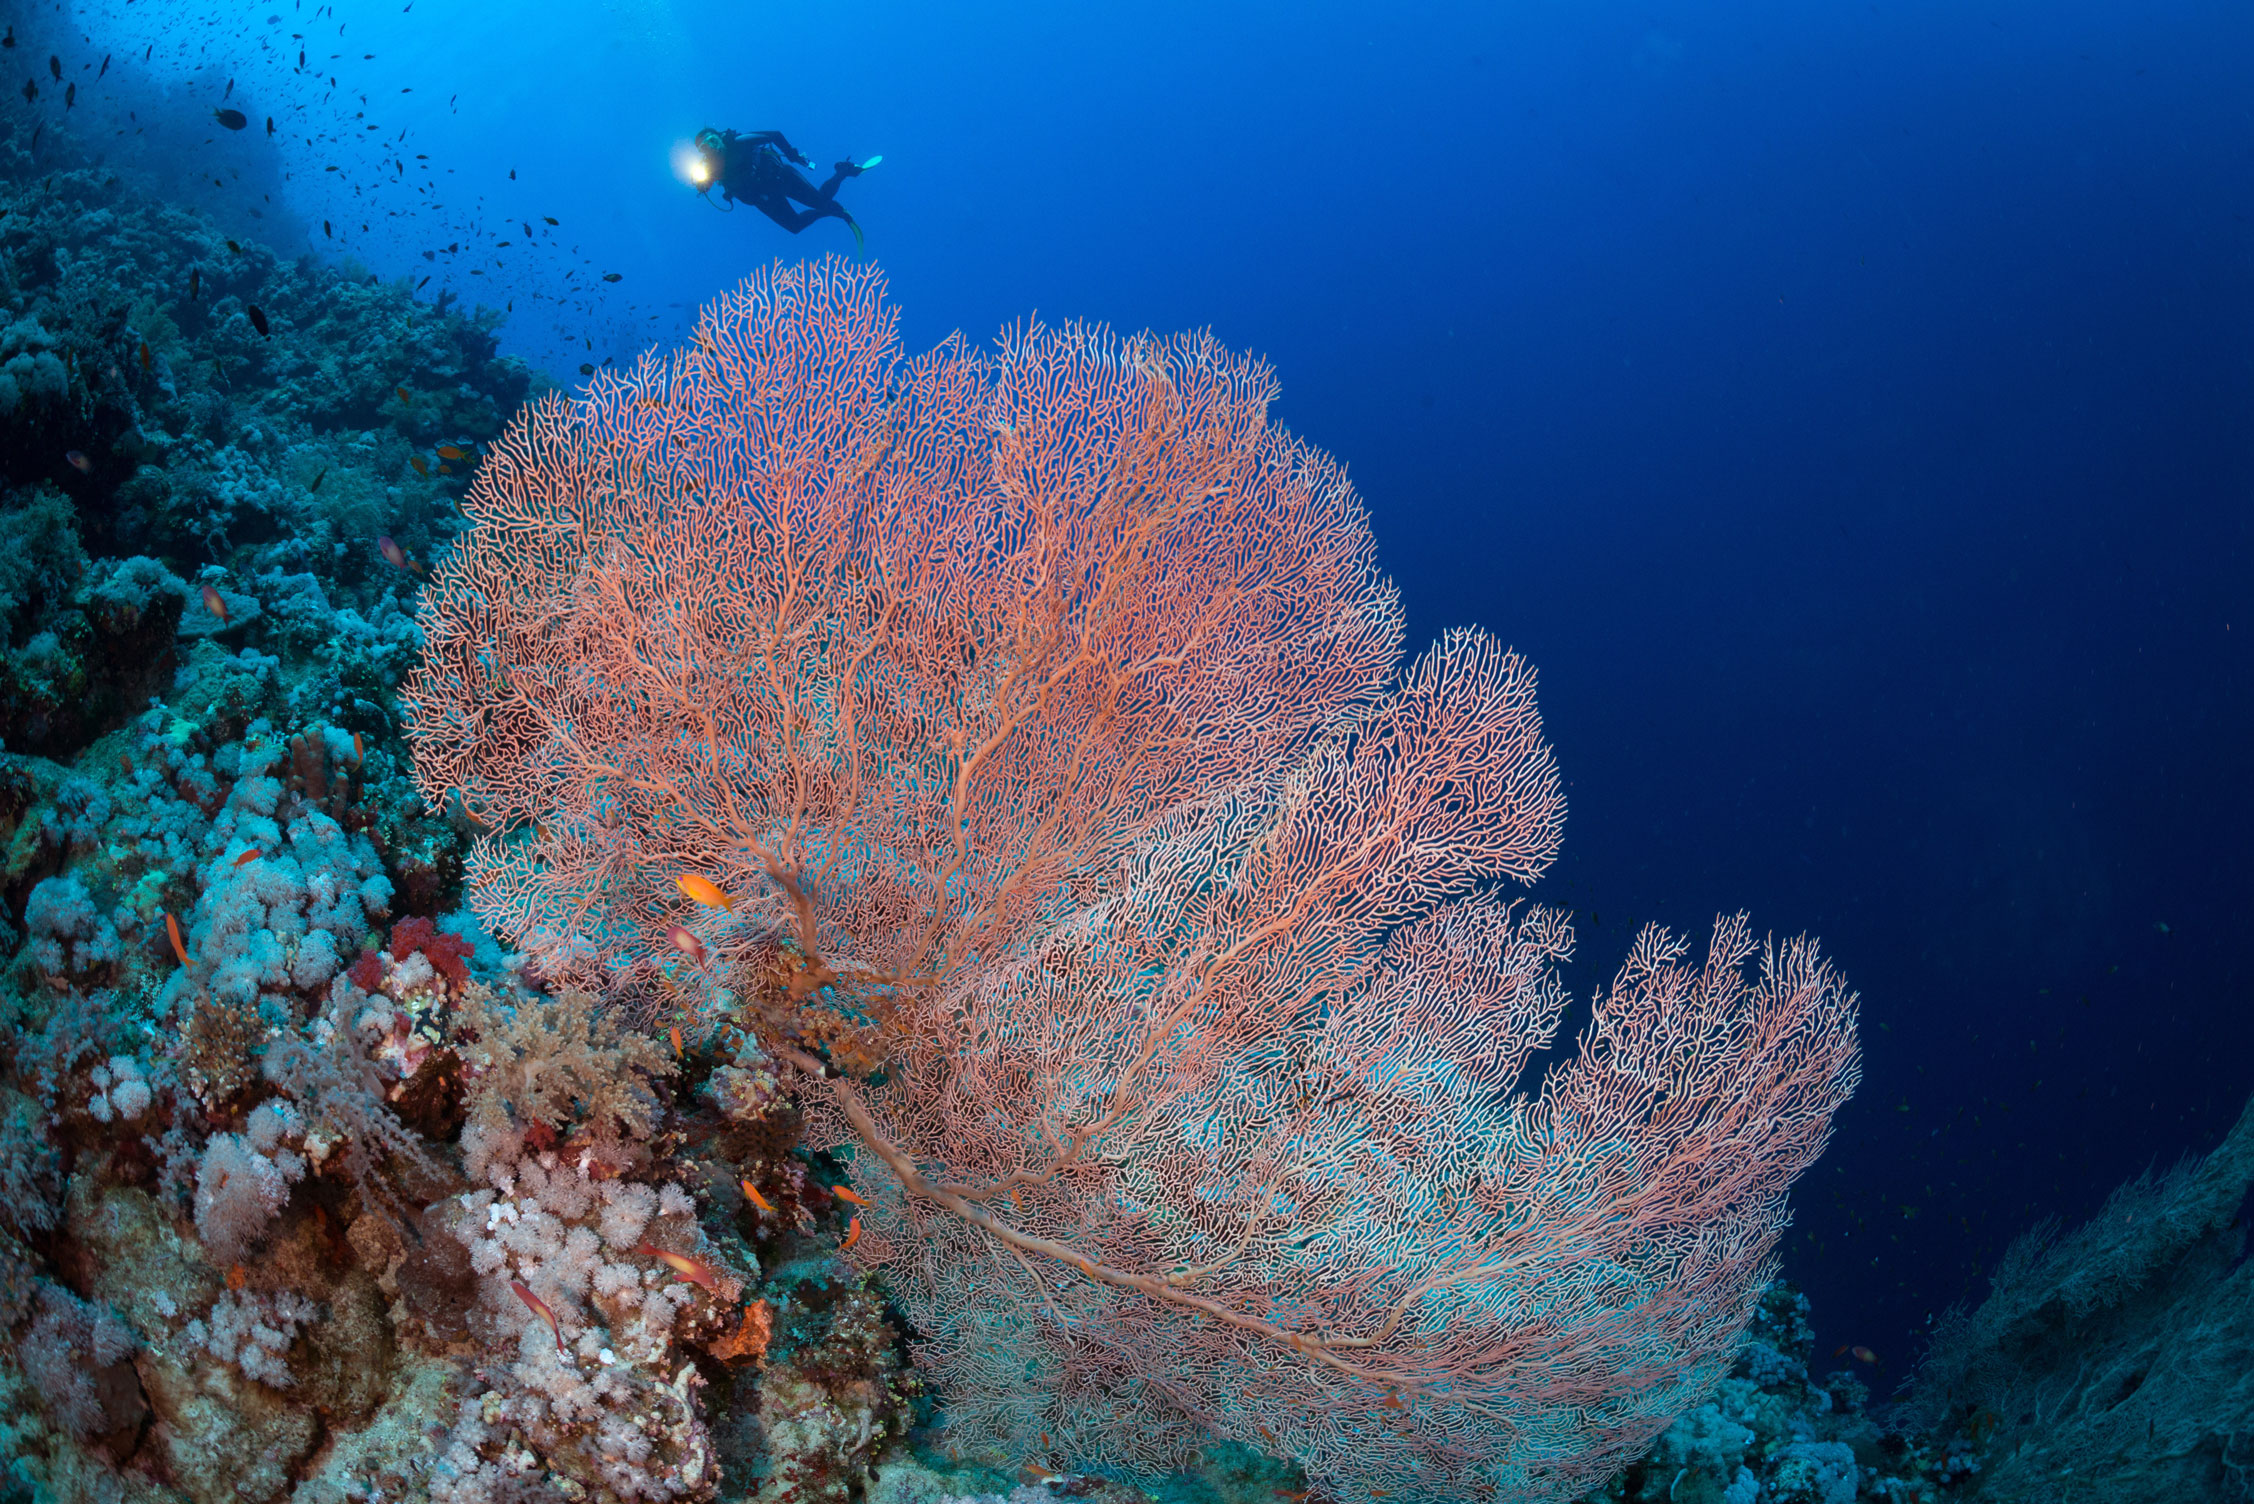 EGY_Red-Sea-UW-Elphinstone-Reef-©-AdobeStock_125981701.jpg